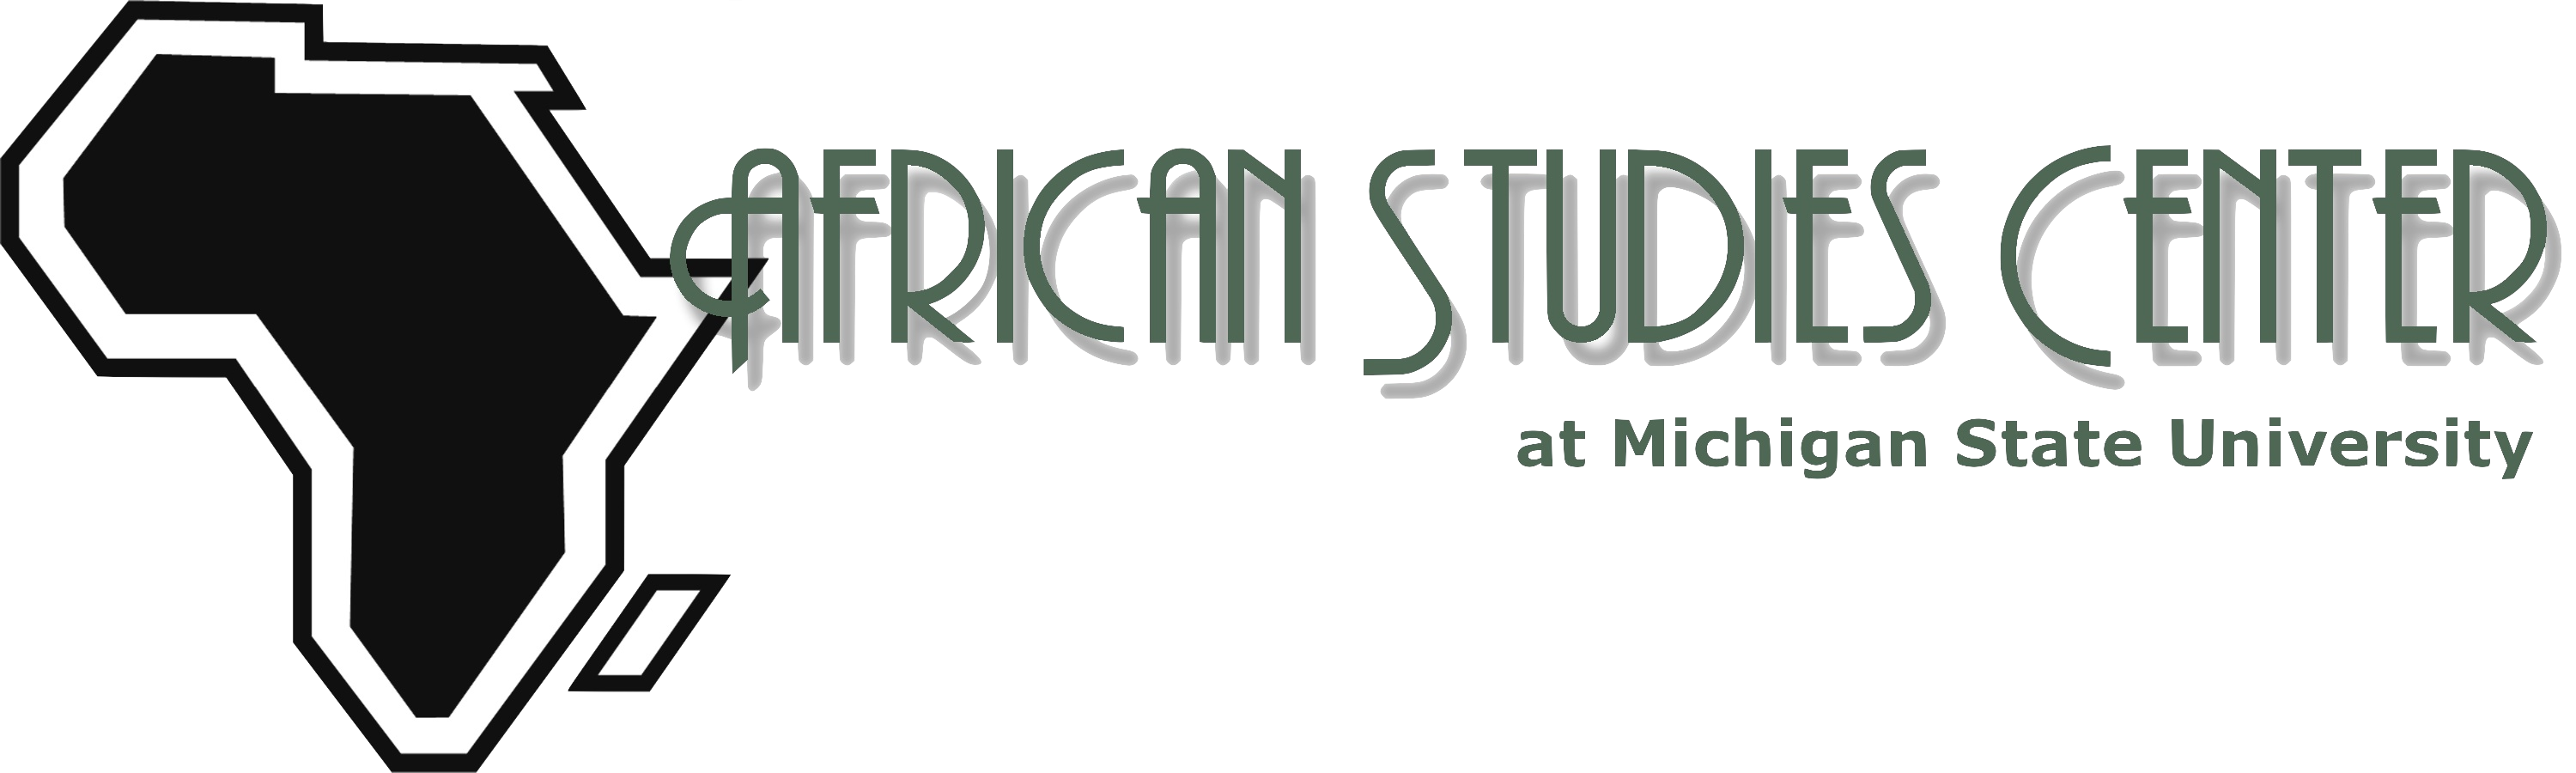 African Studies Center logo